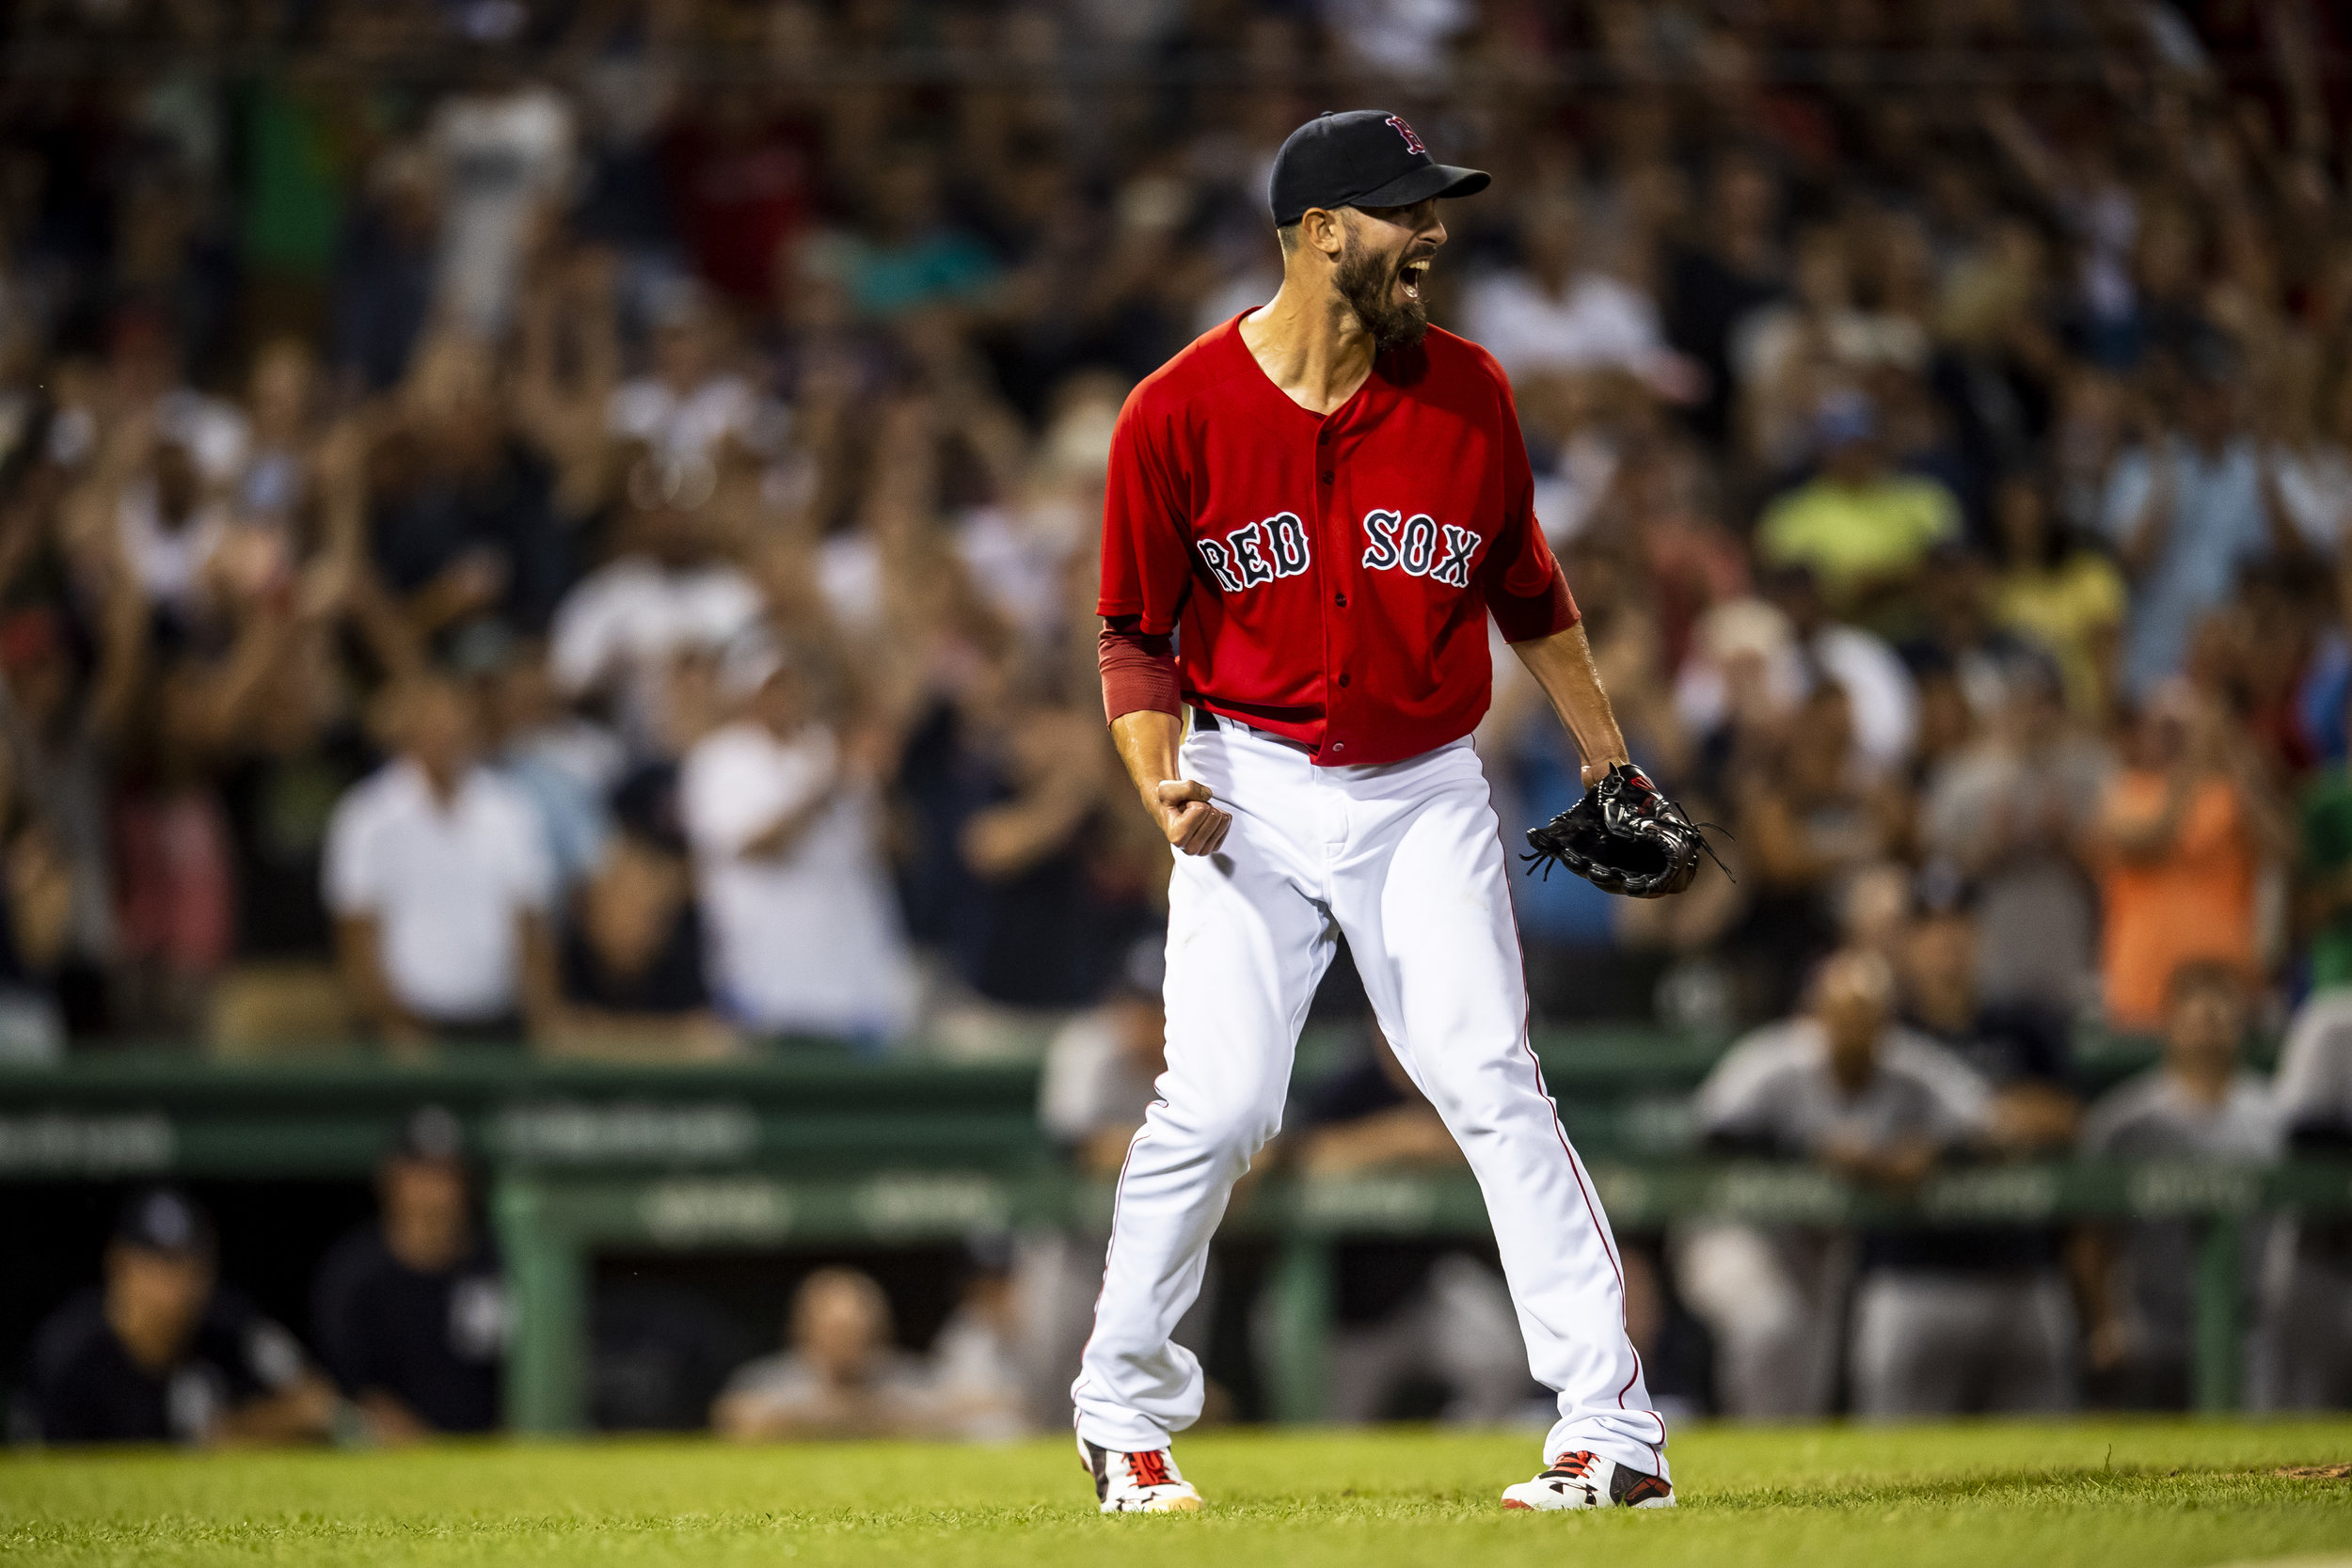 August 3, 2018, Boston, MA: Boston Red Sox pitcher Rick Porcello celebrates pitching a one hit complete game after the Boston Red Sox defeated the New York Yankees at Fenway Park in Boston, Massachusetts on Friday, August 3, 2018. (Photo by Matthew Thomas/Boston Red Sox)